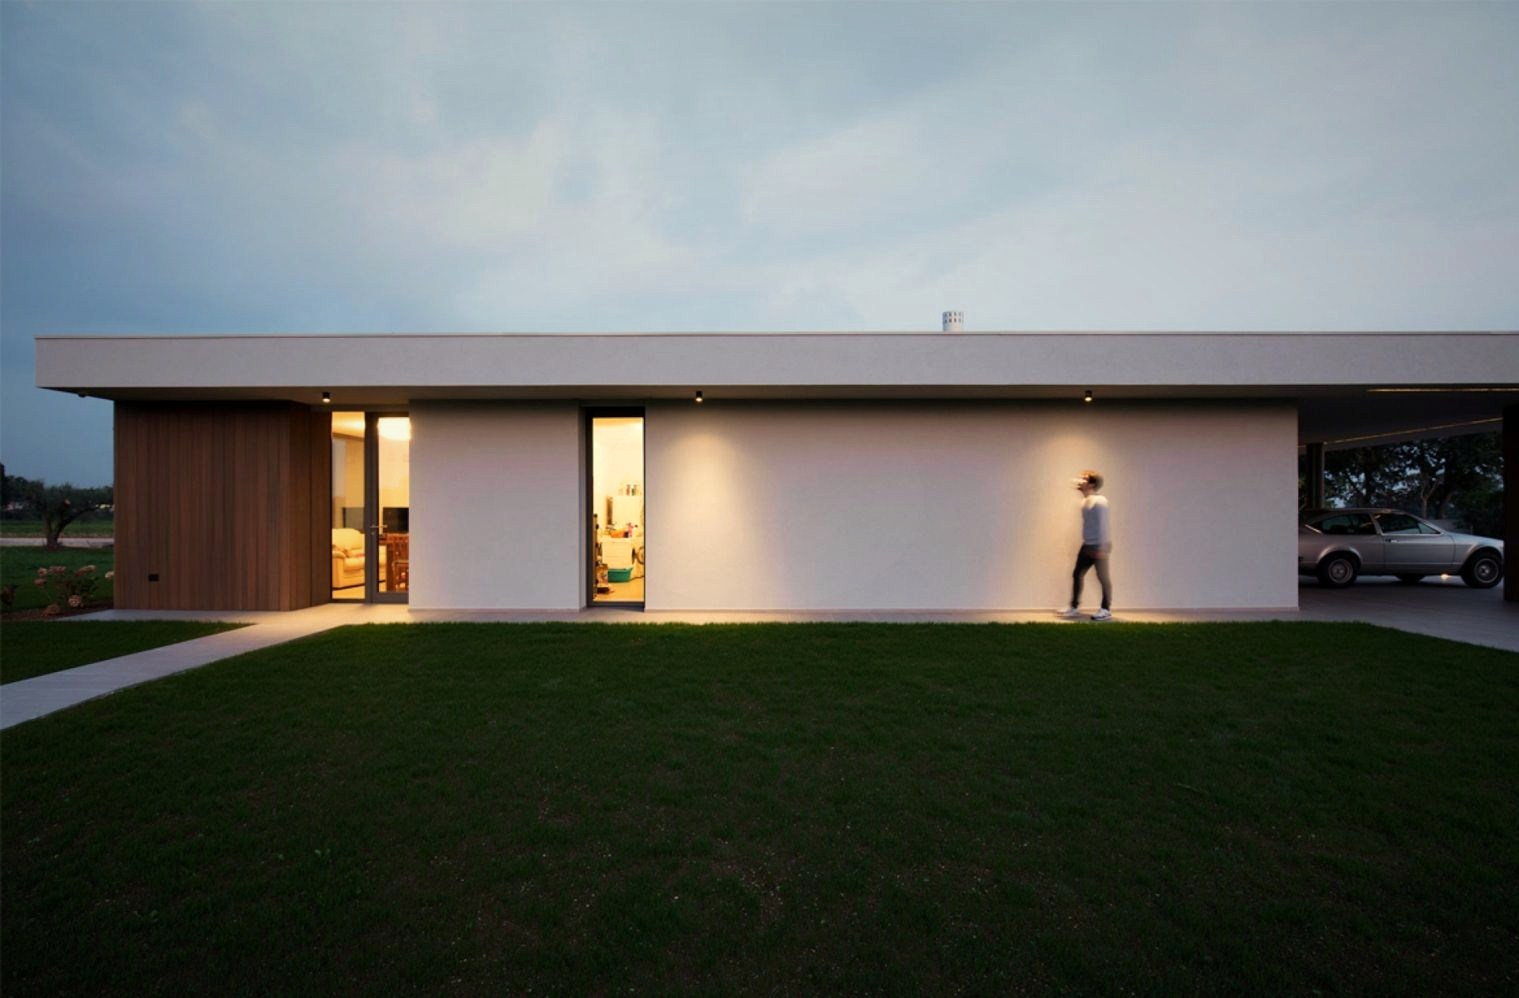 Impressive architecture work underscoring flat roof house style in the middle of green grass field (4)